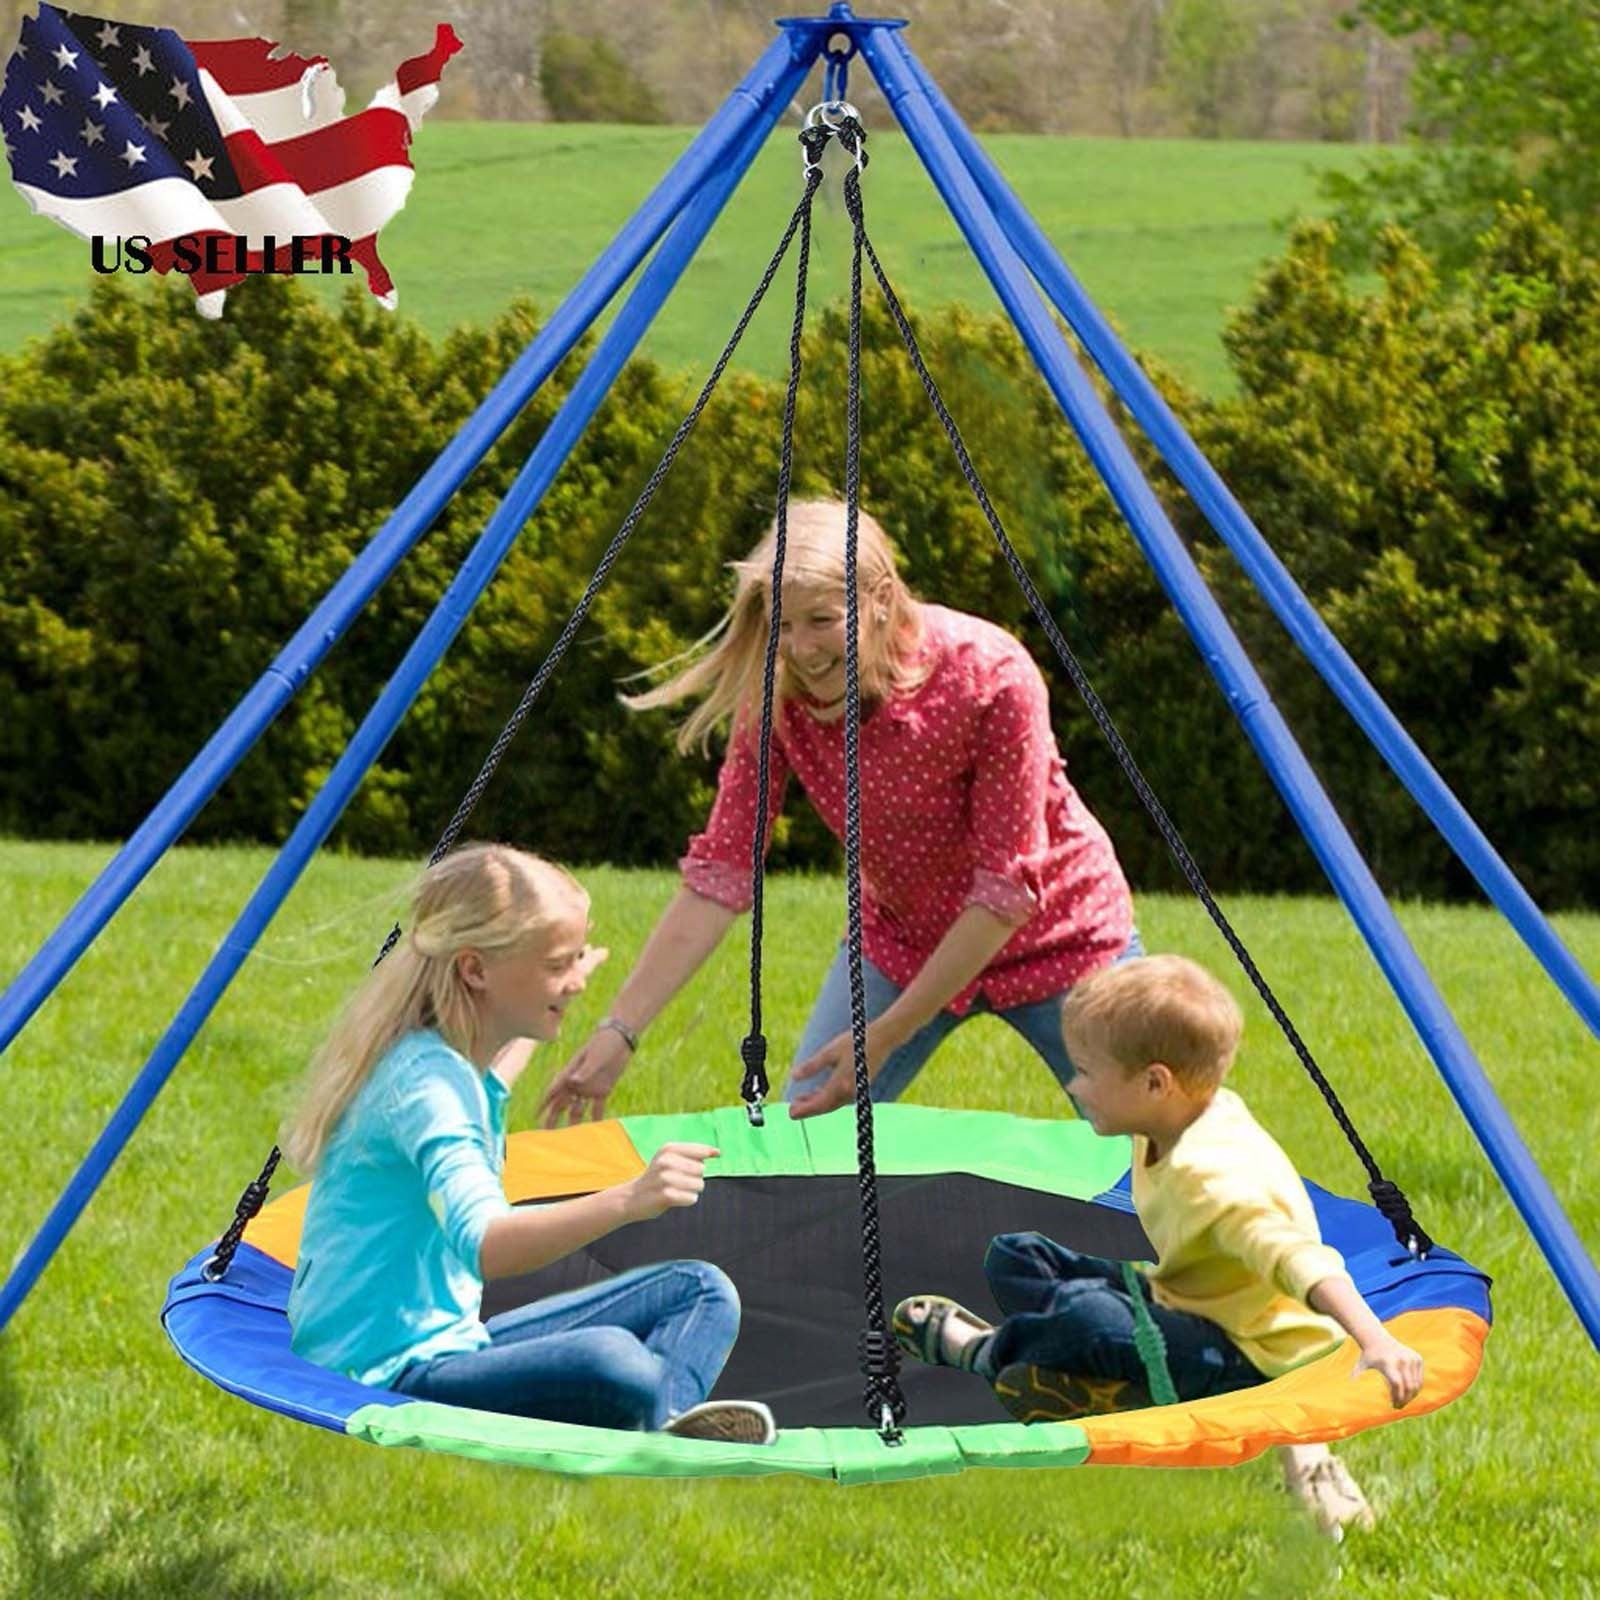 40 Saucer Tree Swing Flying 660lb Multi-Strand Ropes Colorful and Safety Swing